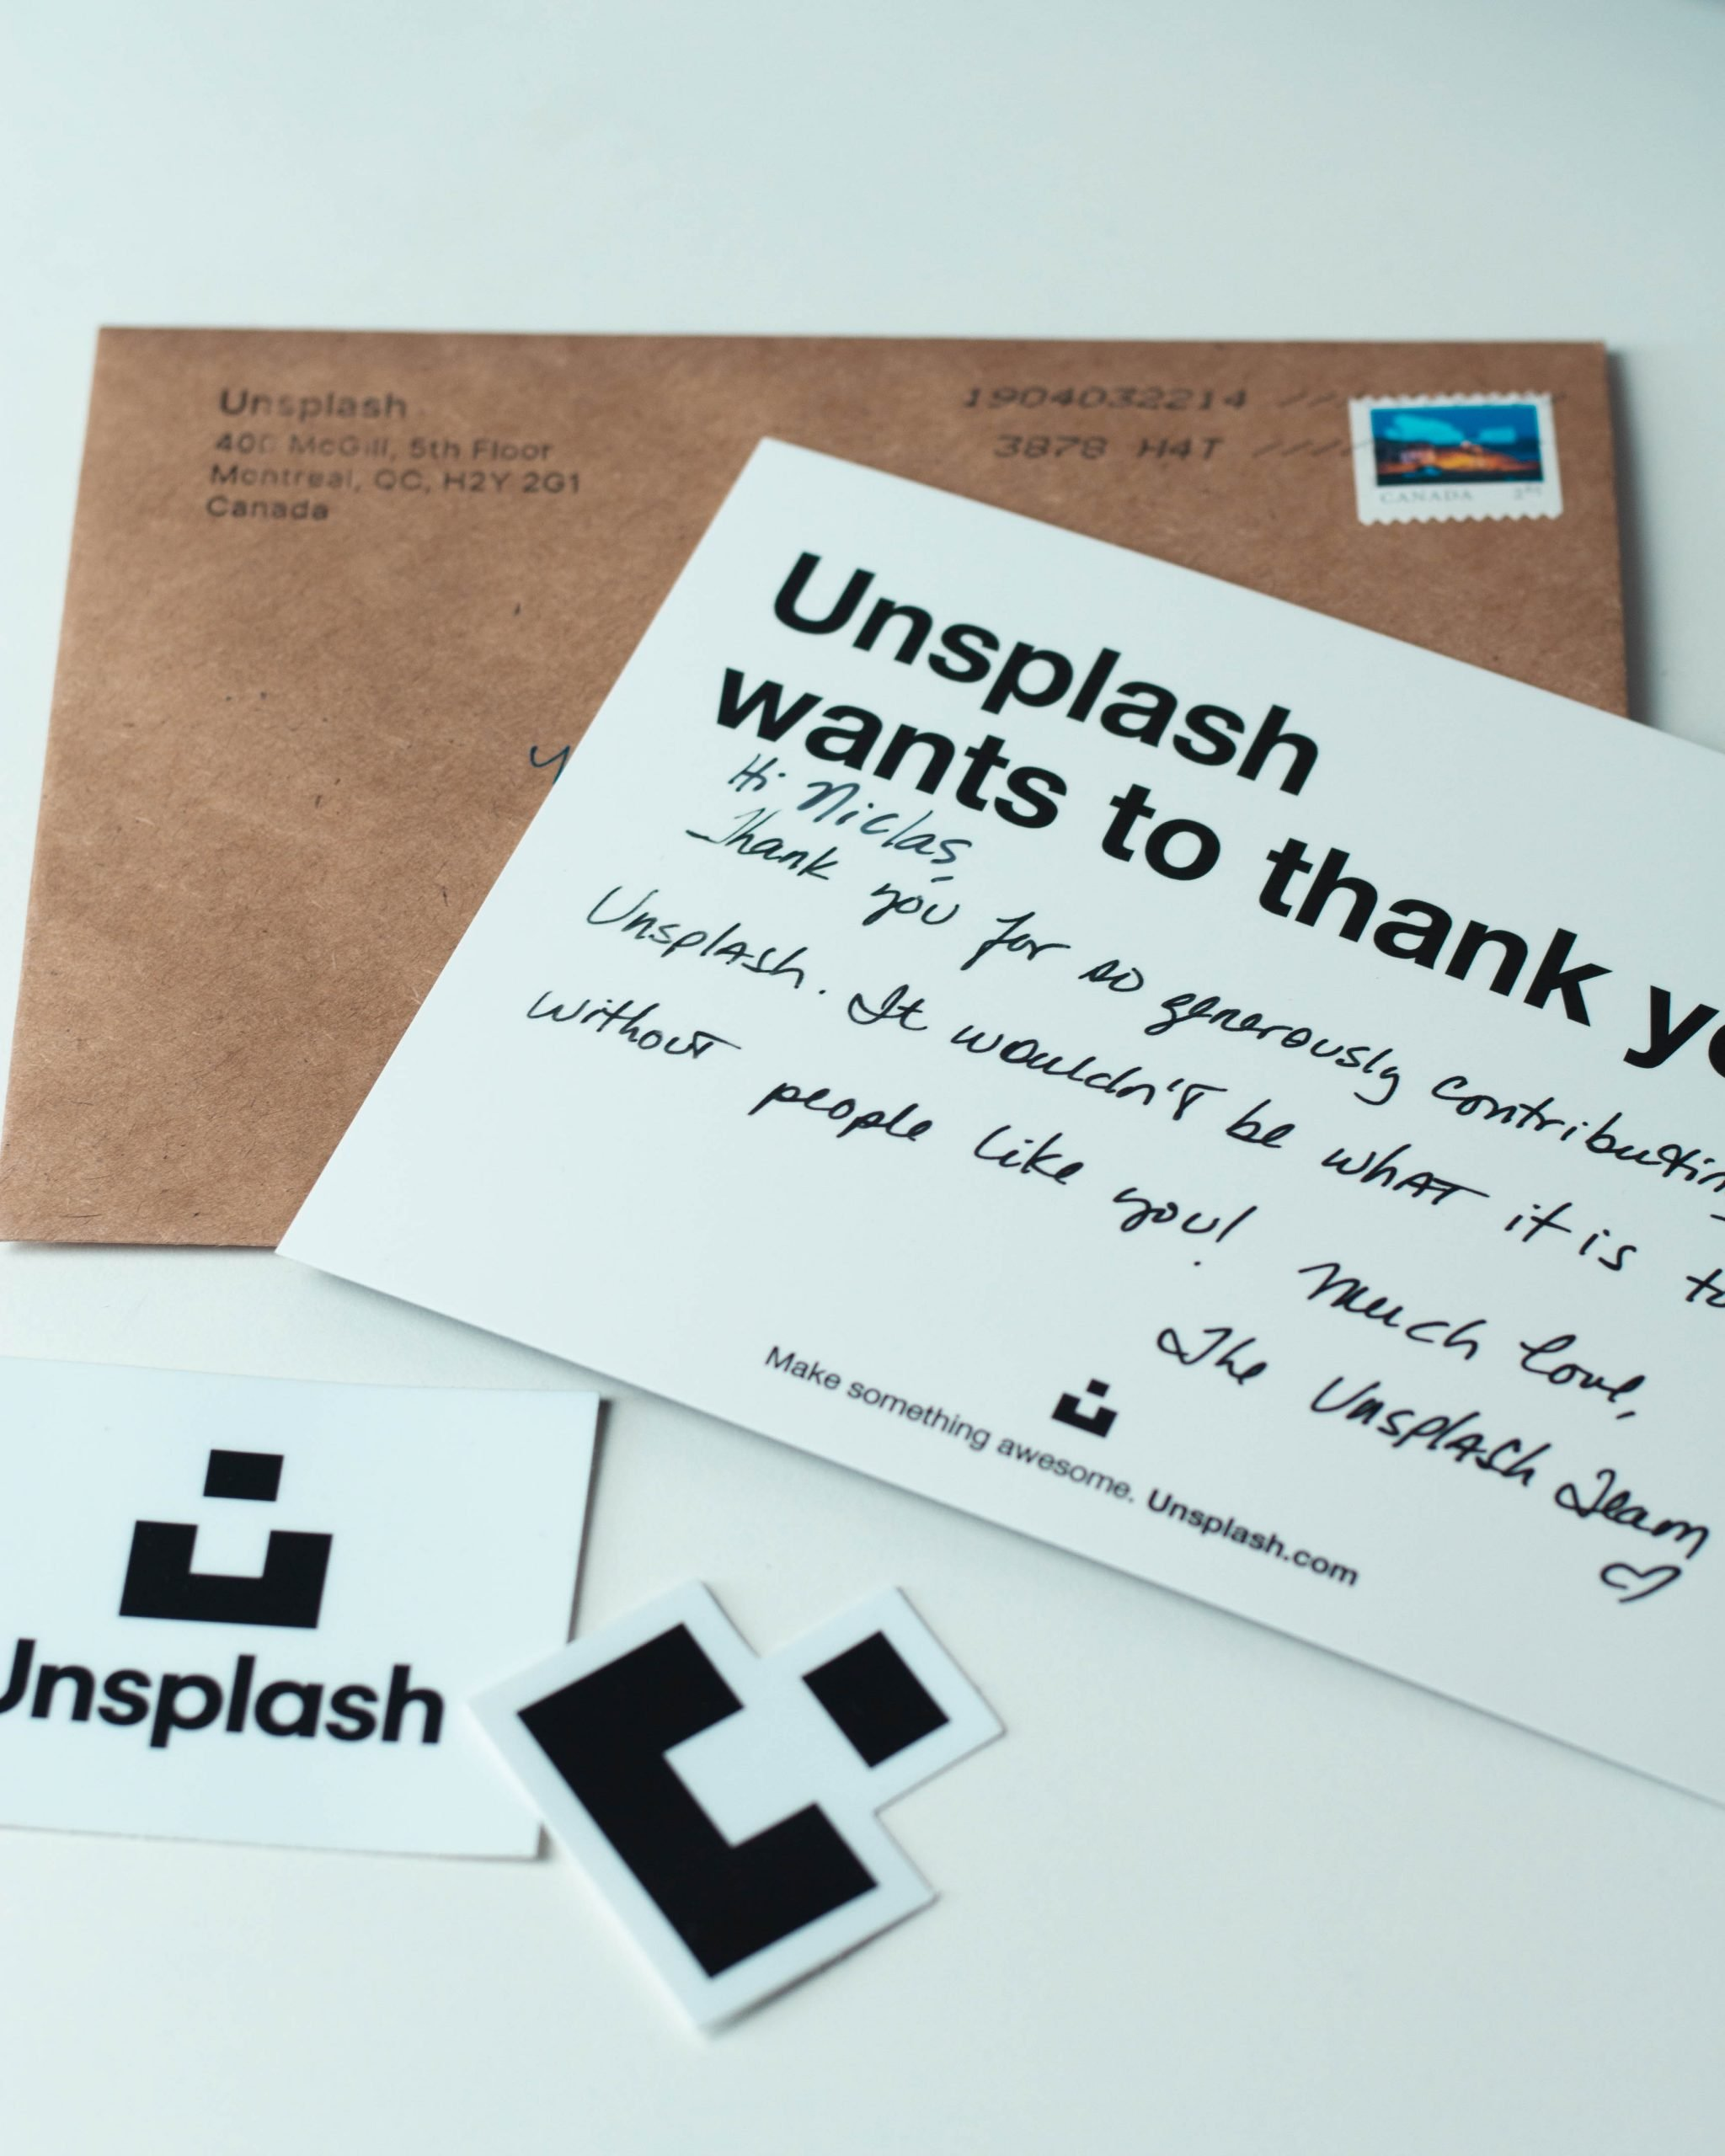 personalize your communications by handwriting a note for your customers